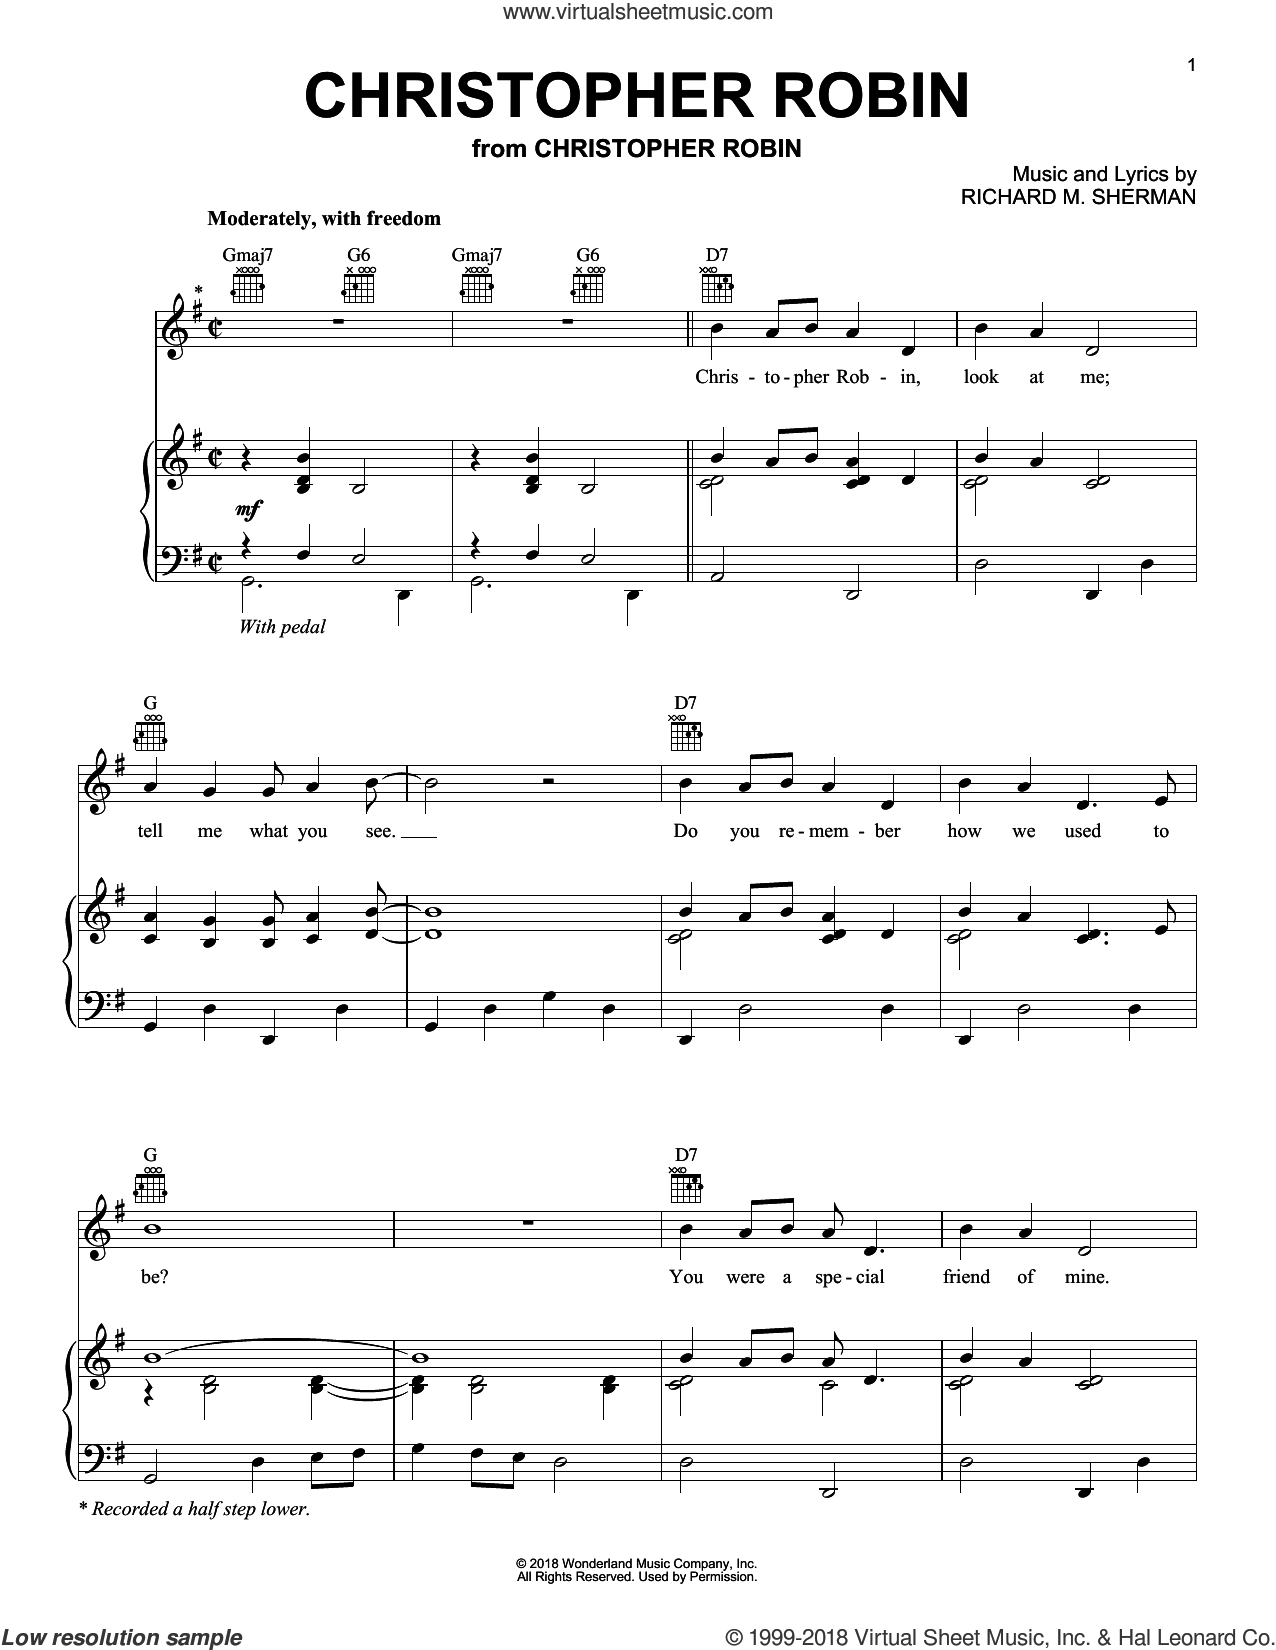 Christopher Robin (from Christopher Robin) sheet music for voice, piano or guitar by Geoff Zanelli & Jon Brion, Geoff Zanelli, Jon Brion and Richard M. Sherman, intermediate skill level